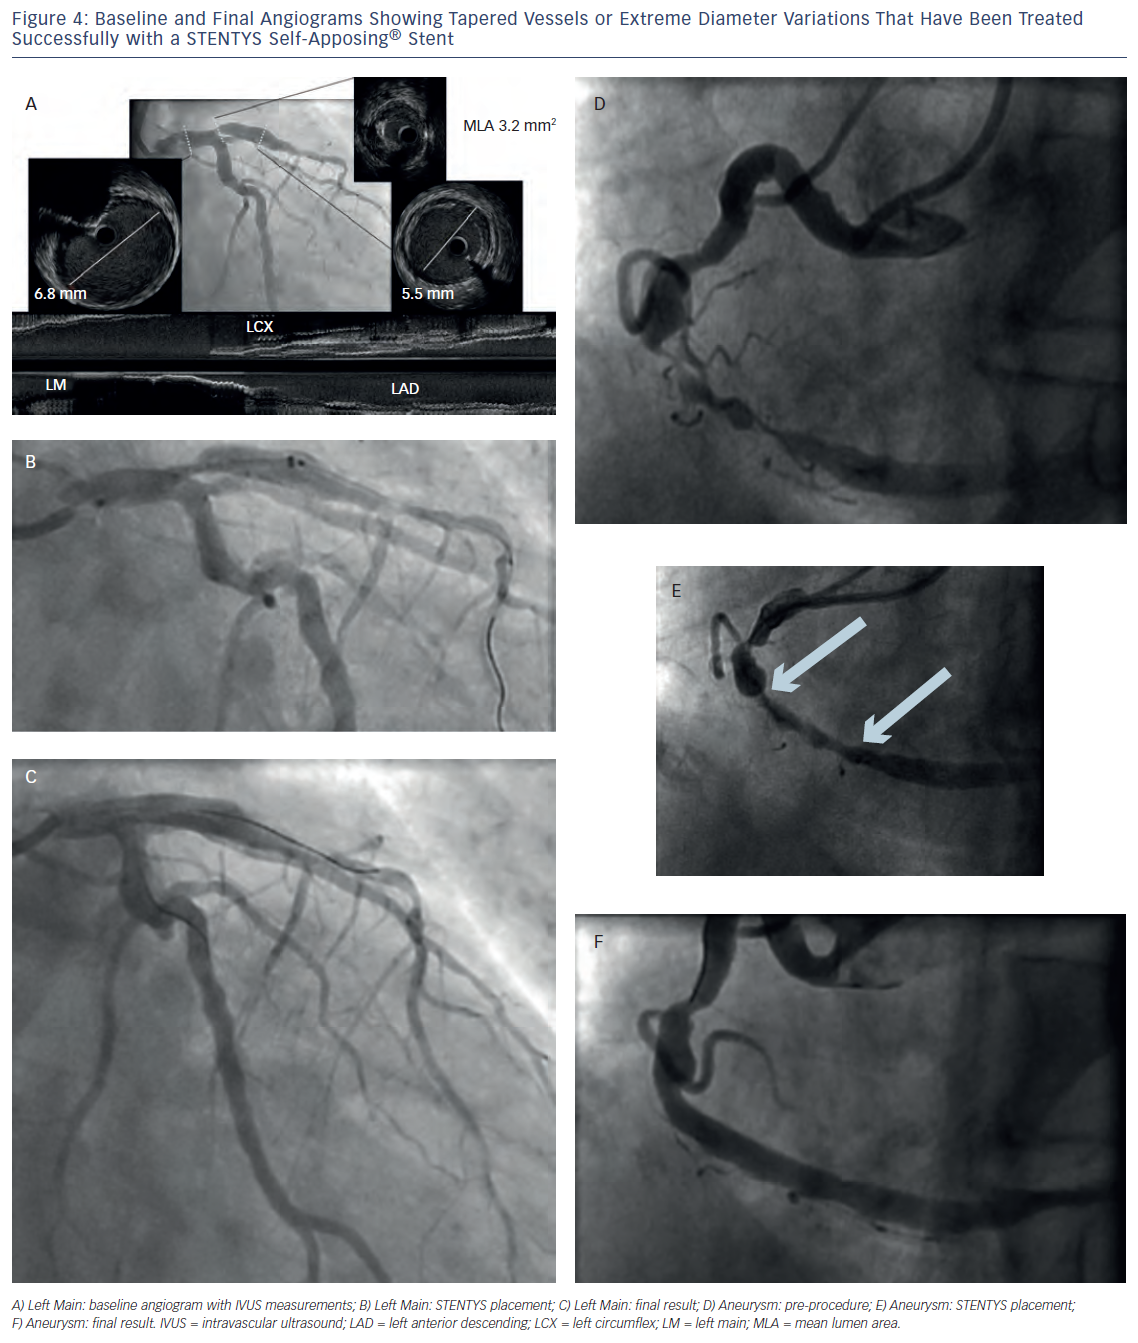 Figure 4: Baseline and Final Angiograms Showing Tapered Vessels or Extreme Diameter Variations That Have Been Treated Successfully with a STENTYS Self-Apposing® Stent